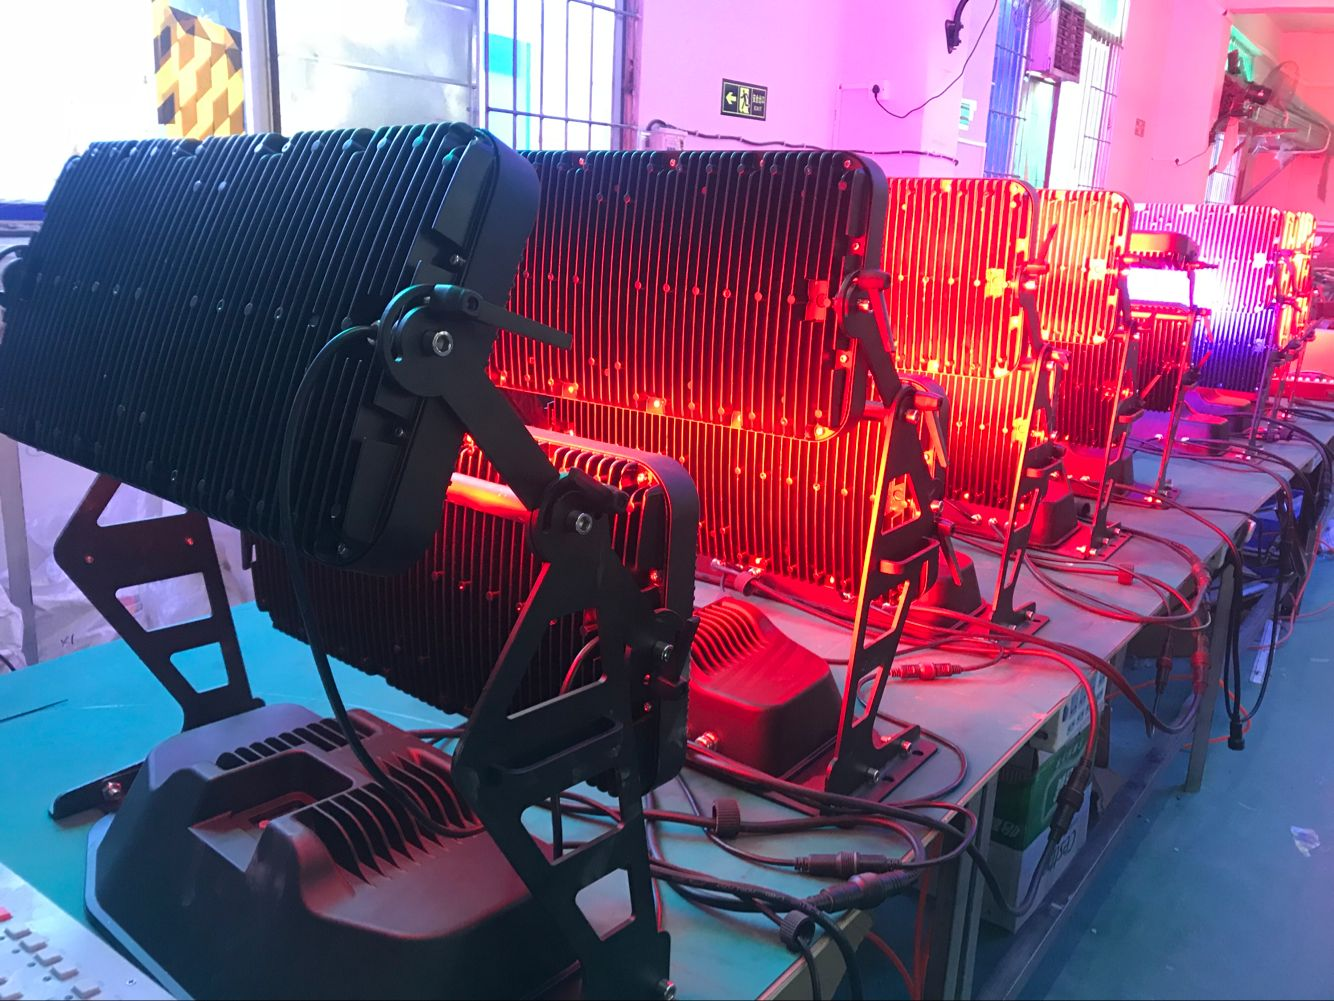 Wall Washer Light 120*12w 4in1 RGBW Led City Light For Stage Event